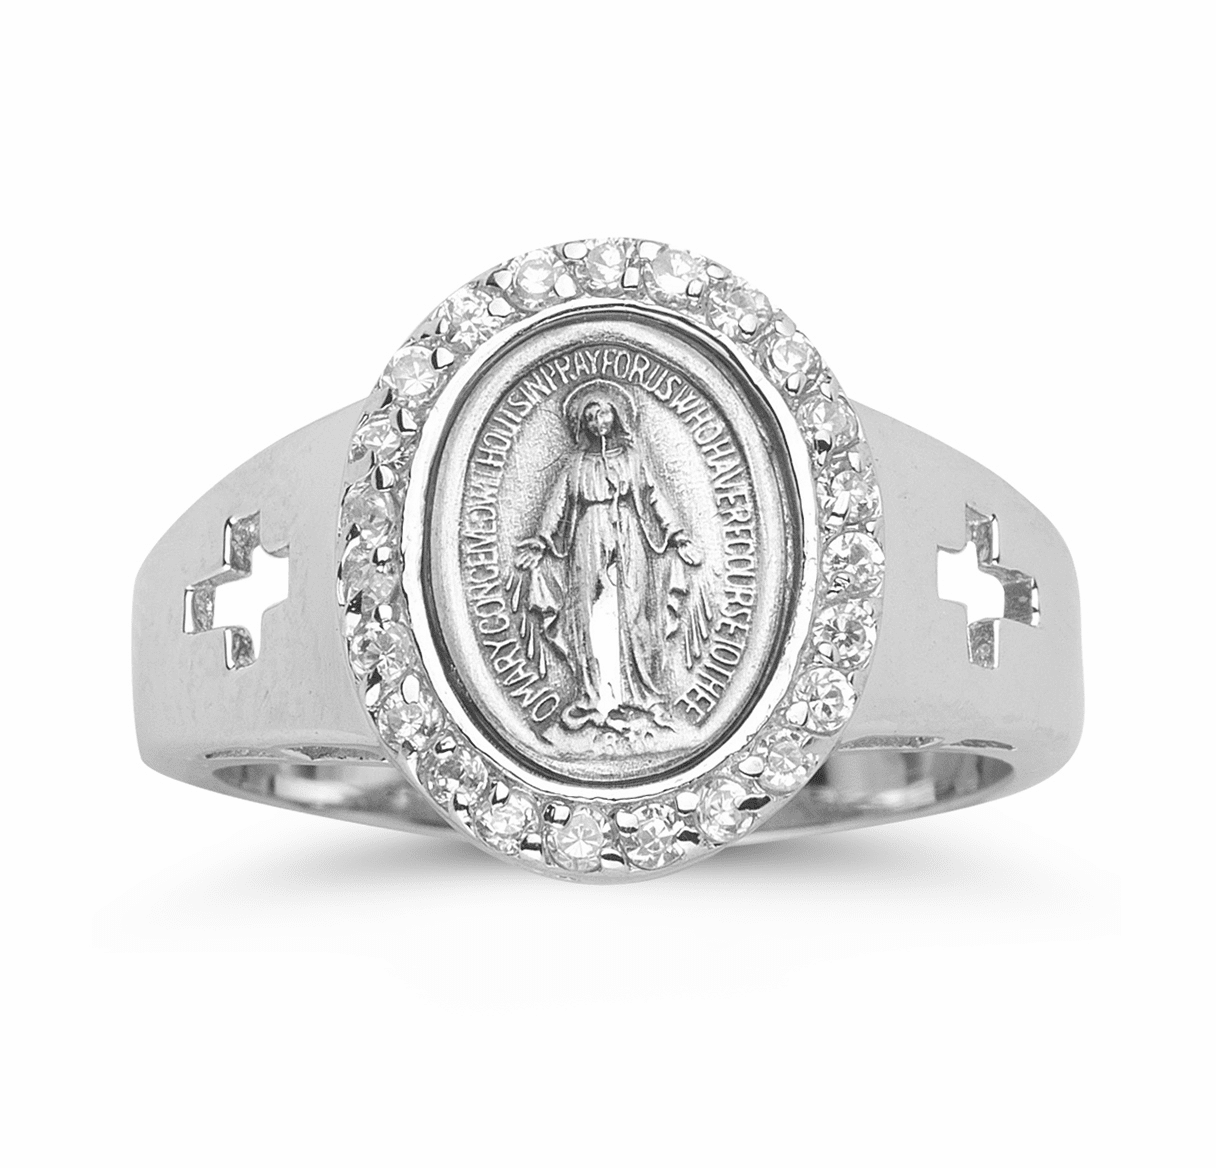 HMH Religious Sterling Silver Miraculous Medal Ring w/Crosses